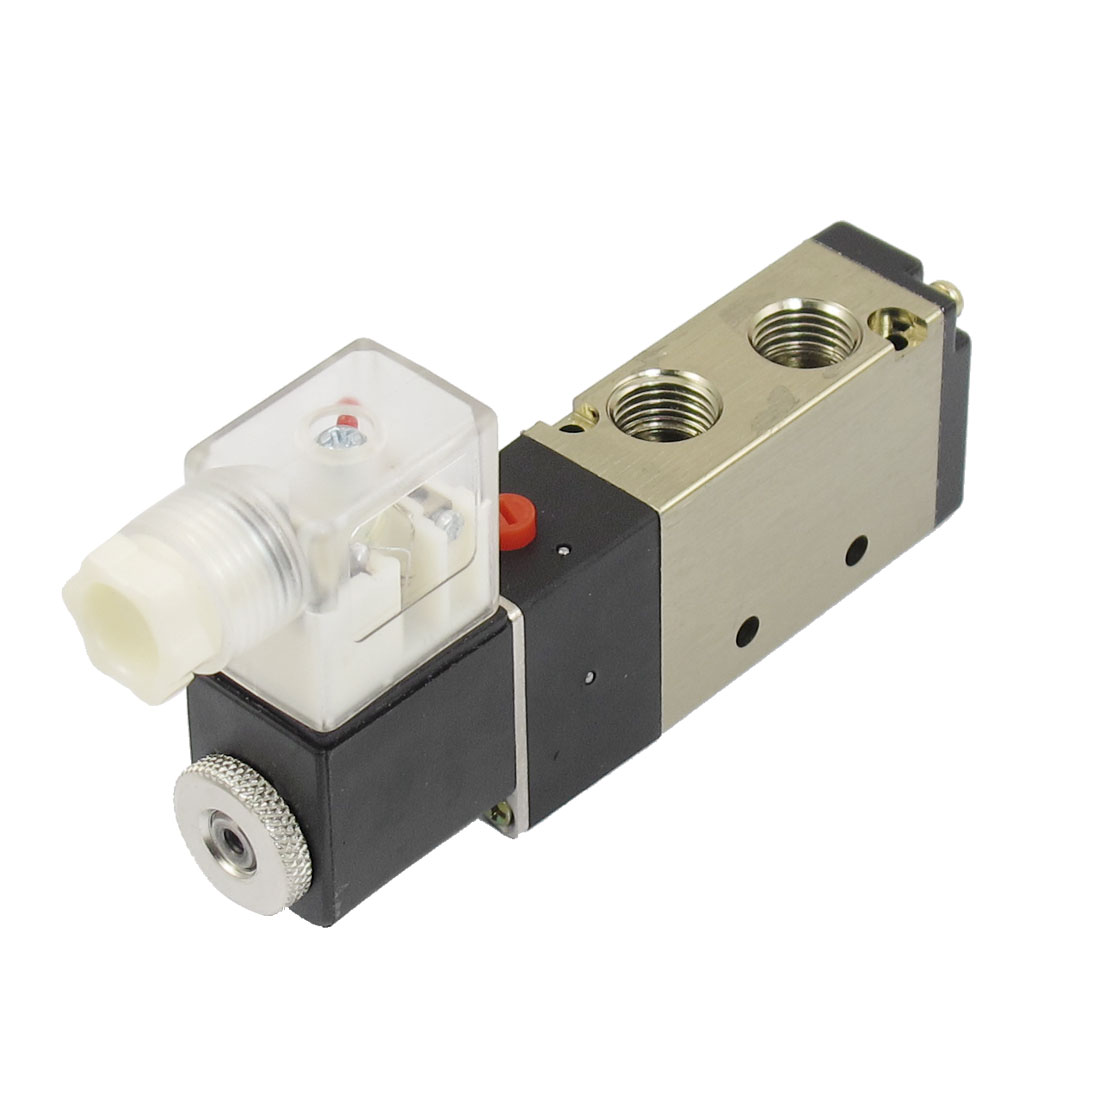 AC 110V 25mA 4.5VA 2 Position 5 Way Pneumatic Electromagnetic Solenoid Valve G1/4""